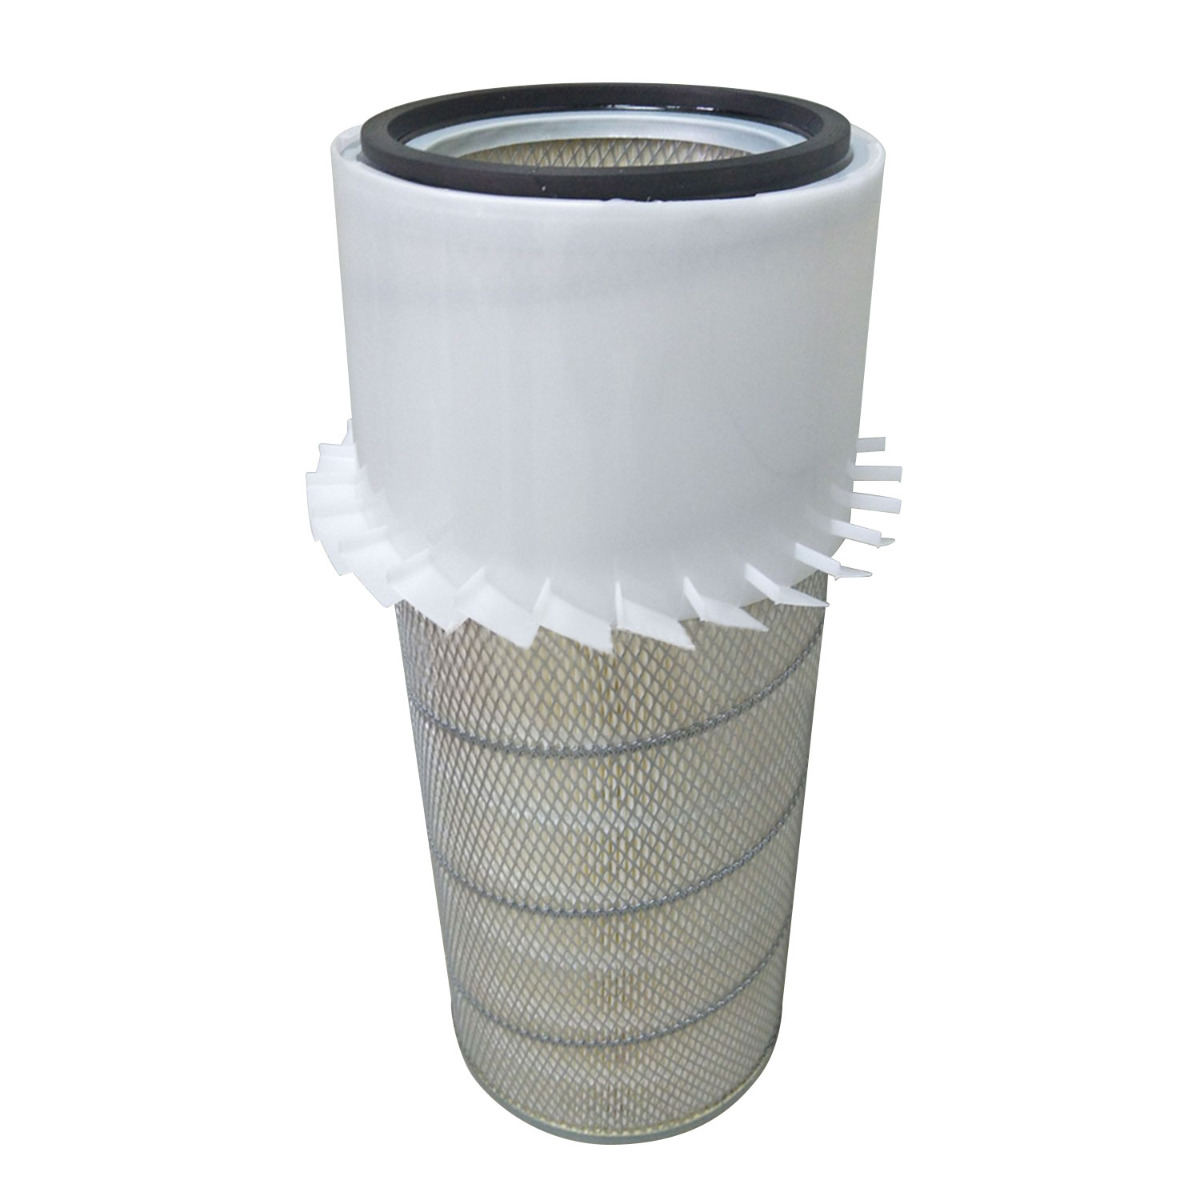 Air Filter Outer Element 6630939 Compatible with Case W11B 450B 450C 455C 480E 480ELL 480F 550 550E 550G 580D 580K 580SD 580SE 580SK 584E 585E 590 760